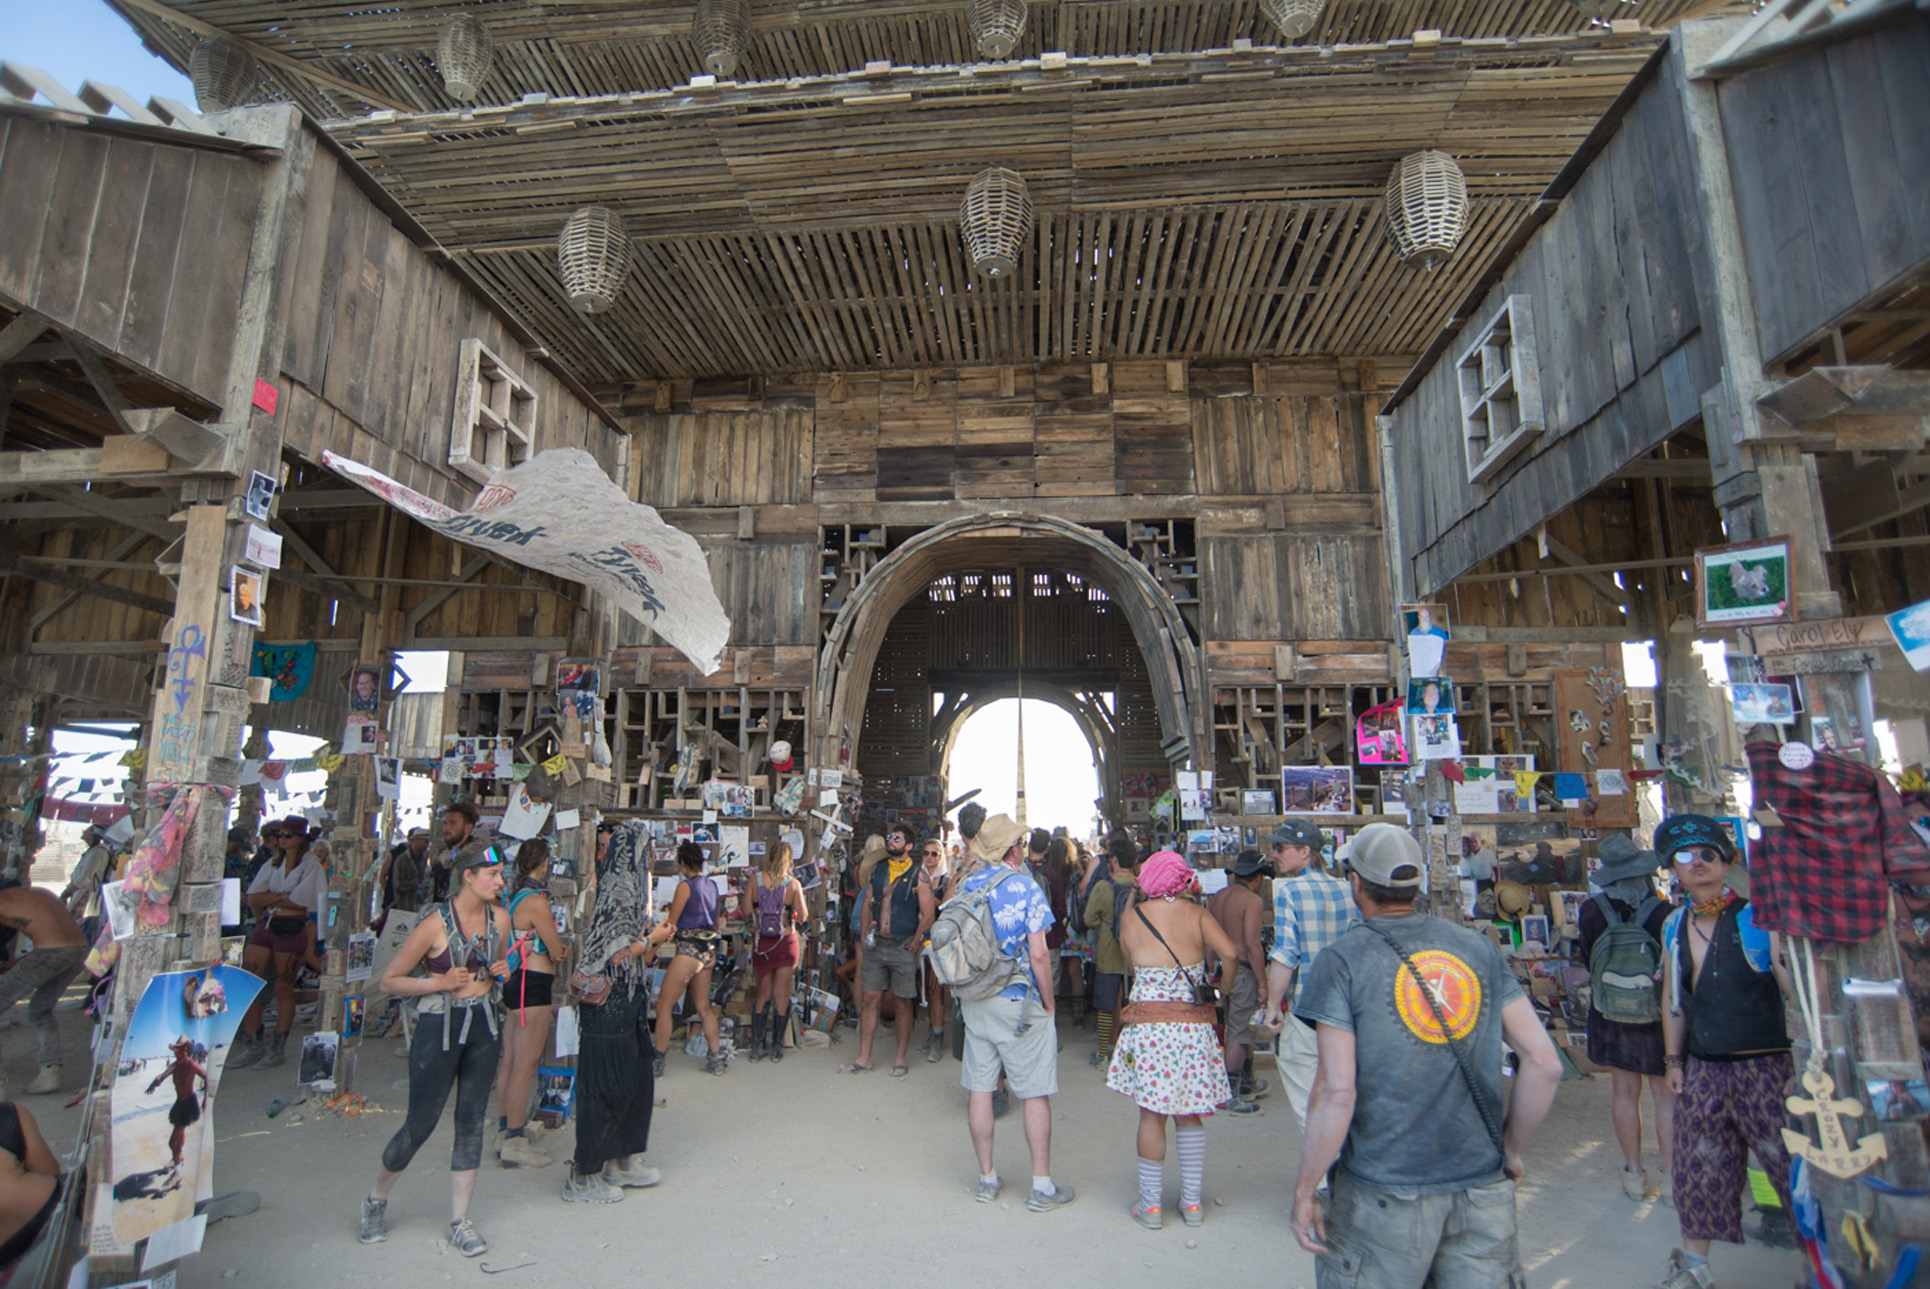 160902_0474_BurningMan2016.jpg